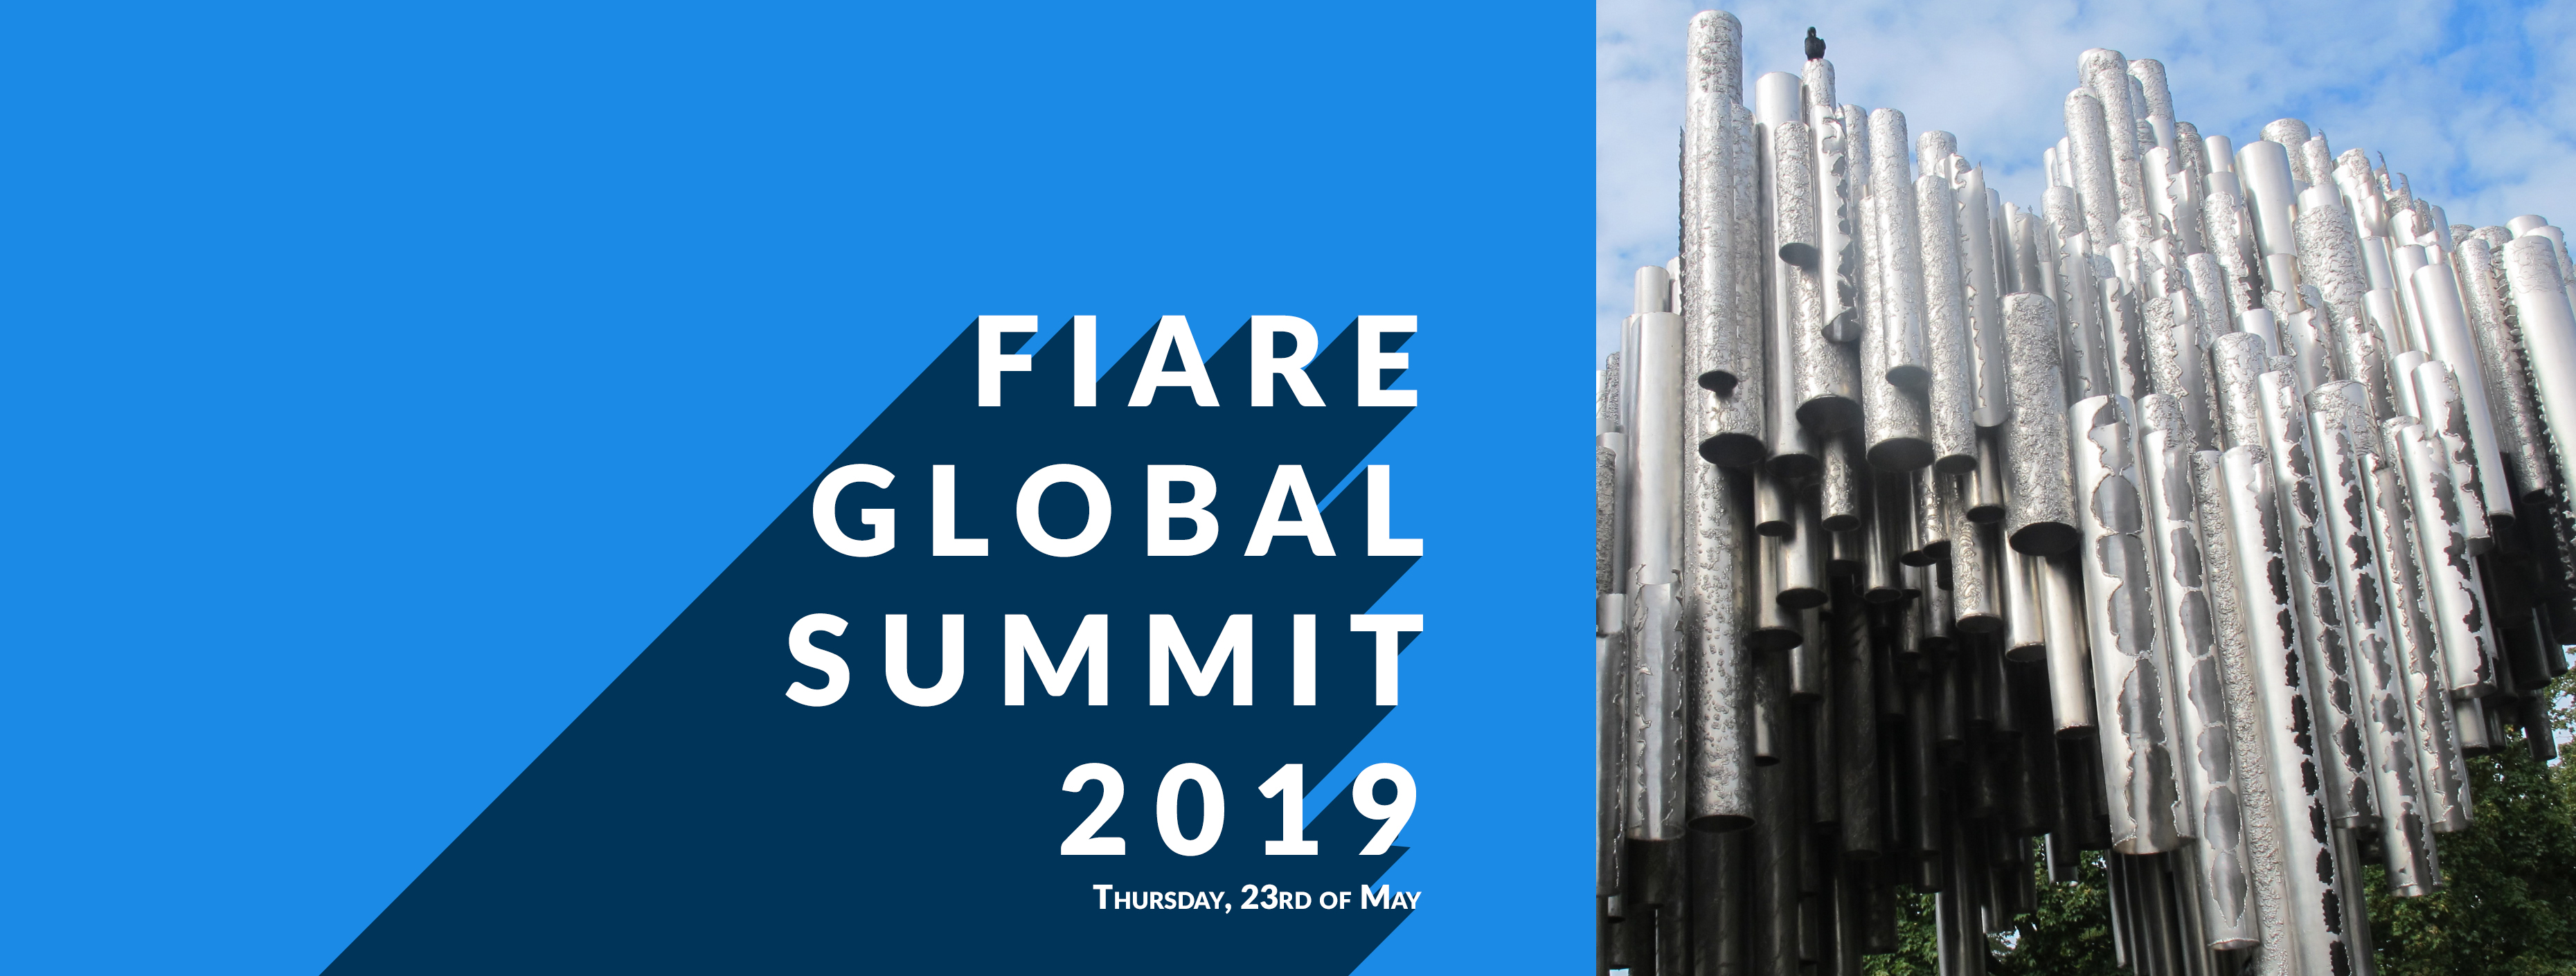 Fiare Global Summit 2019 – Thursday 23rd May